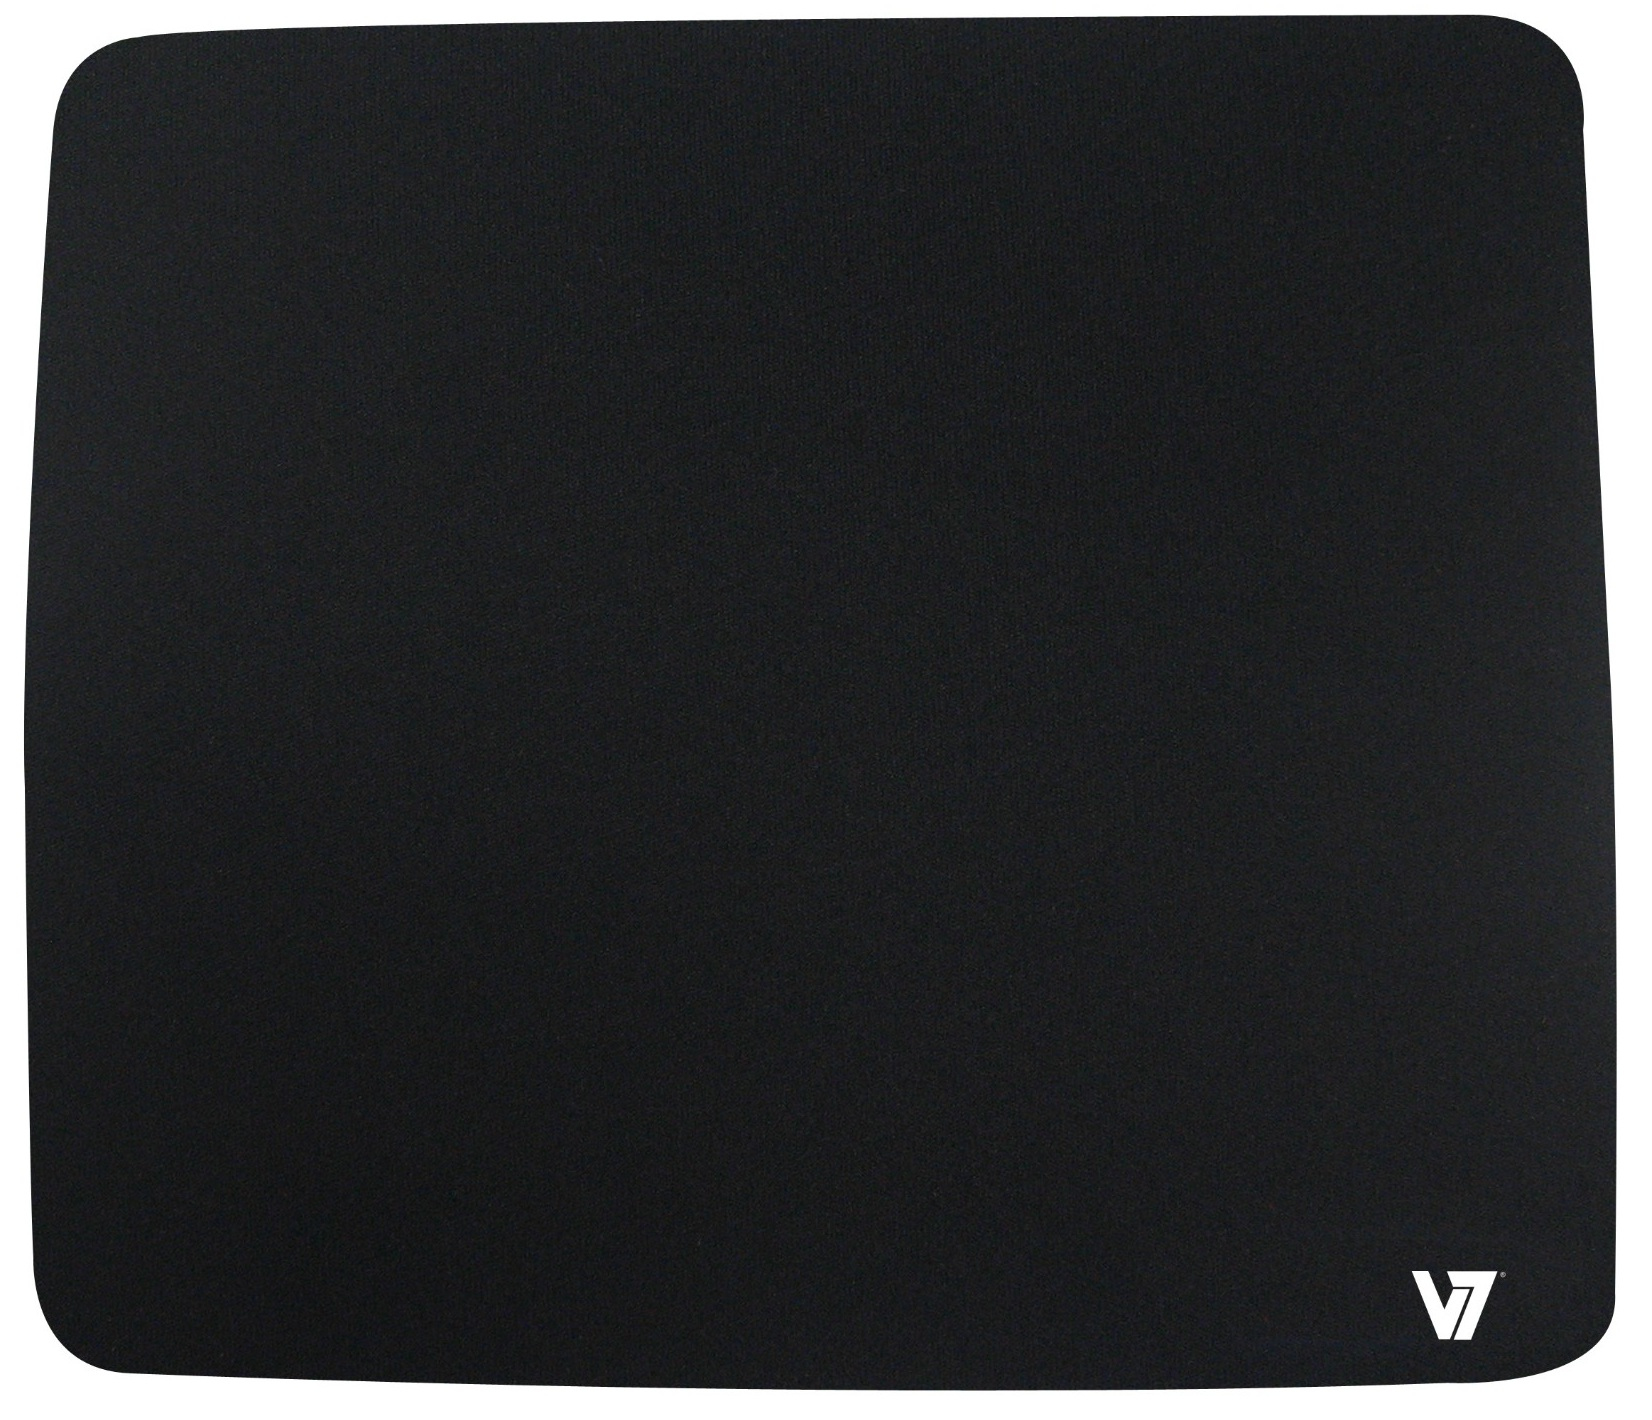 V7 Mouse Pad Black